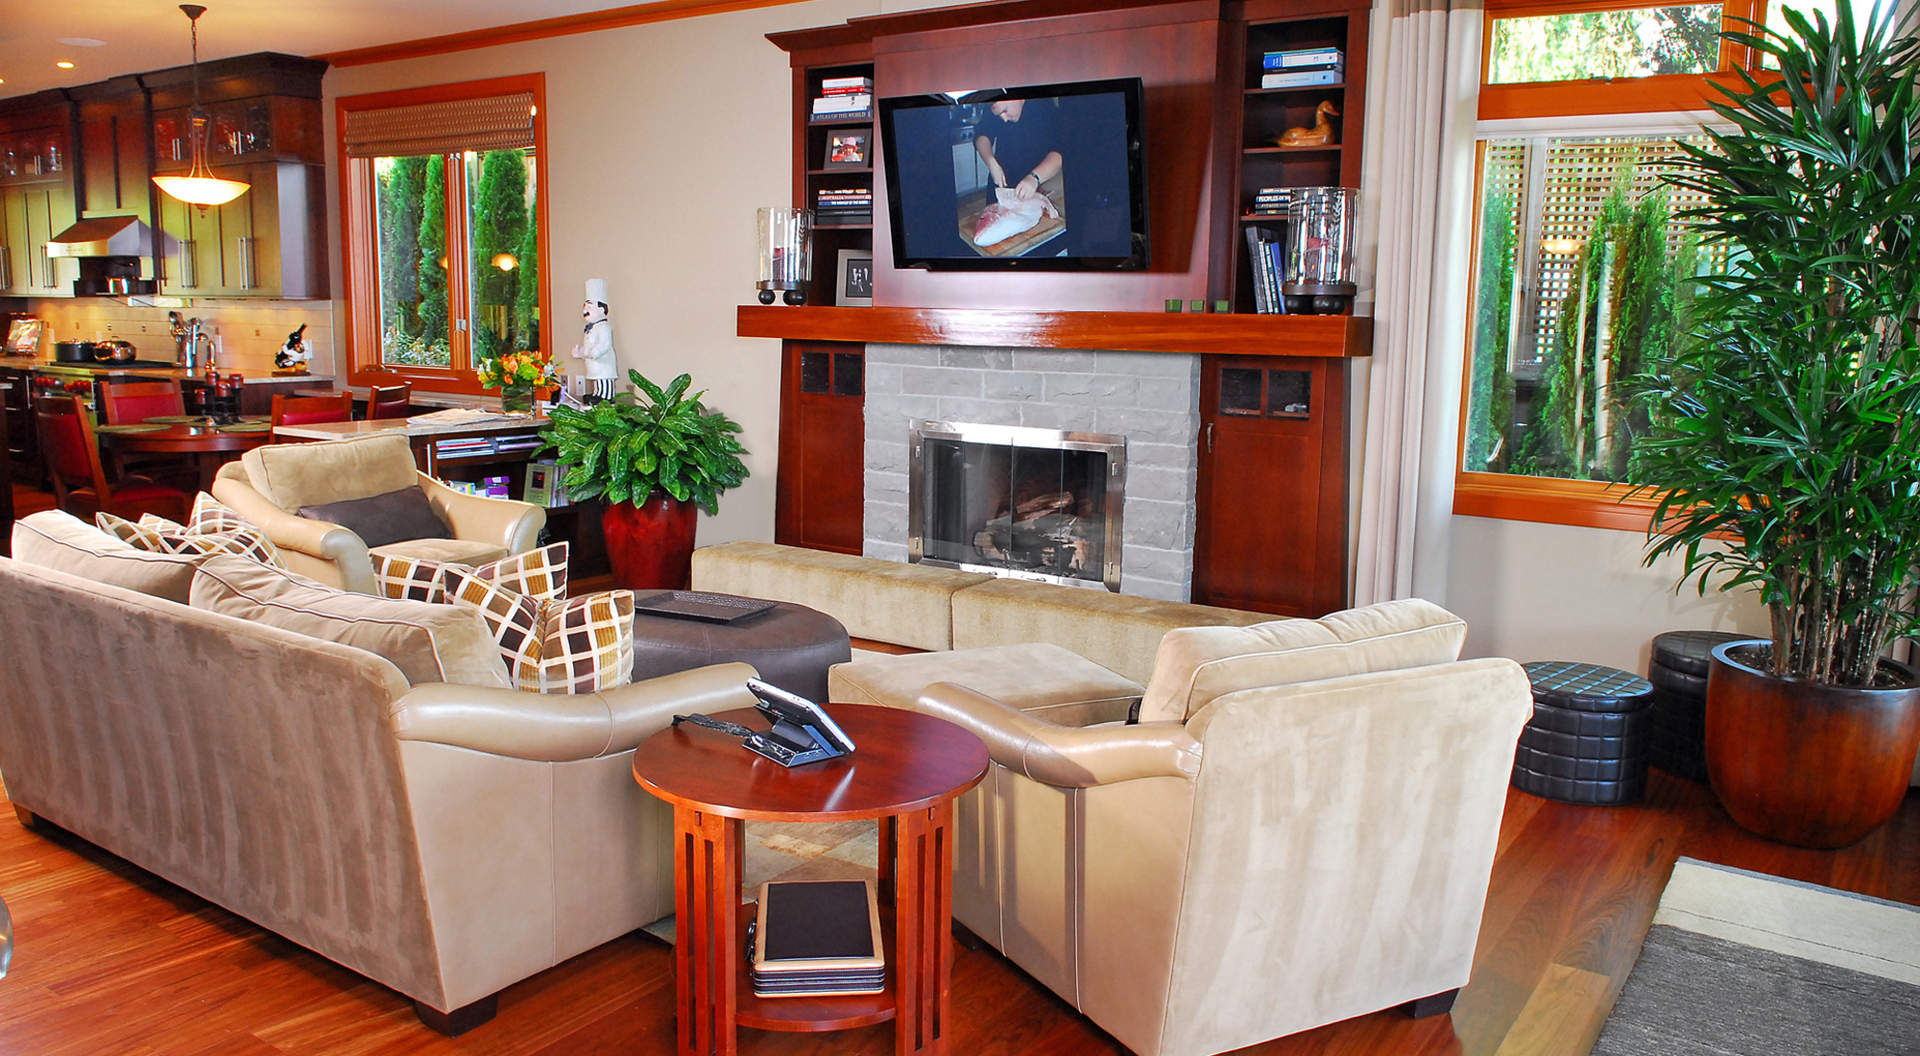 Fantastic Family Room with Roaring Fireplace